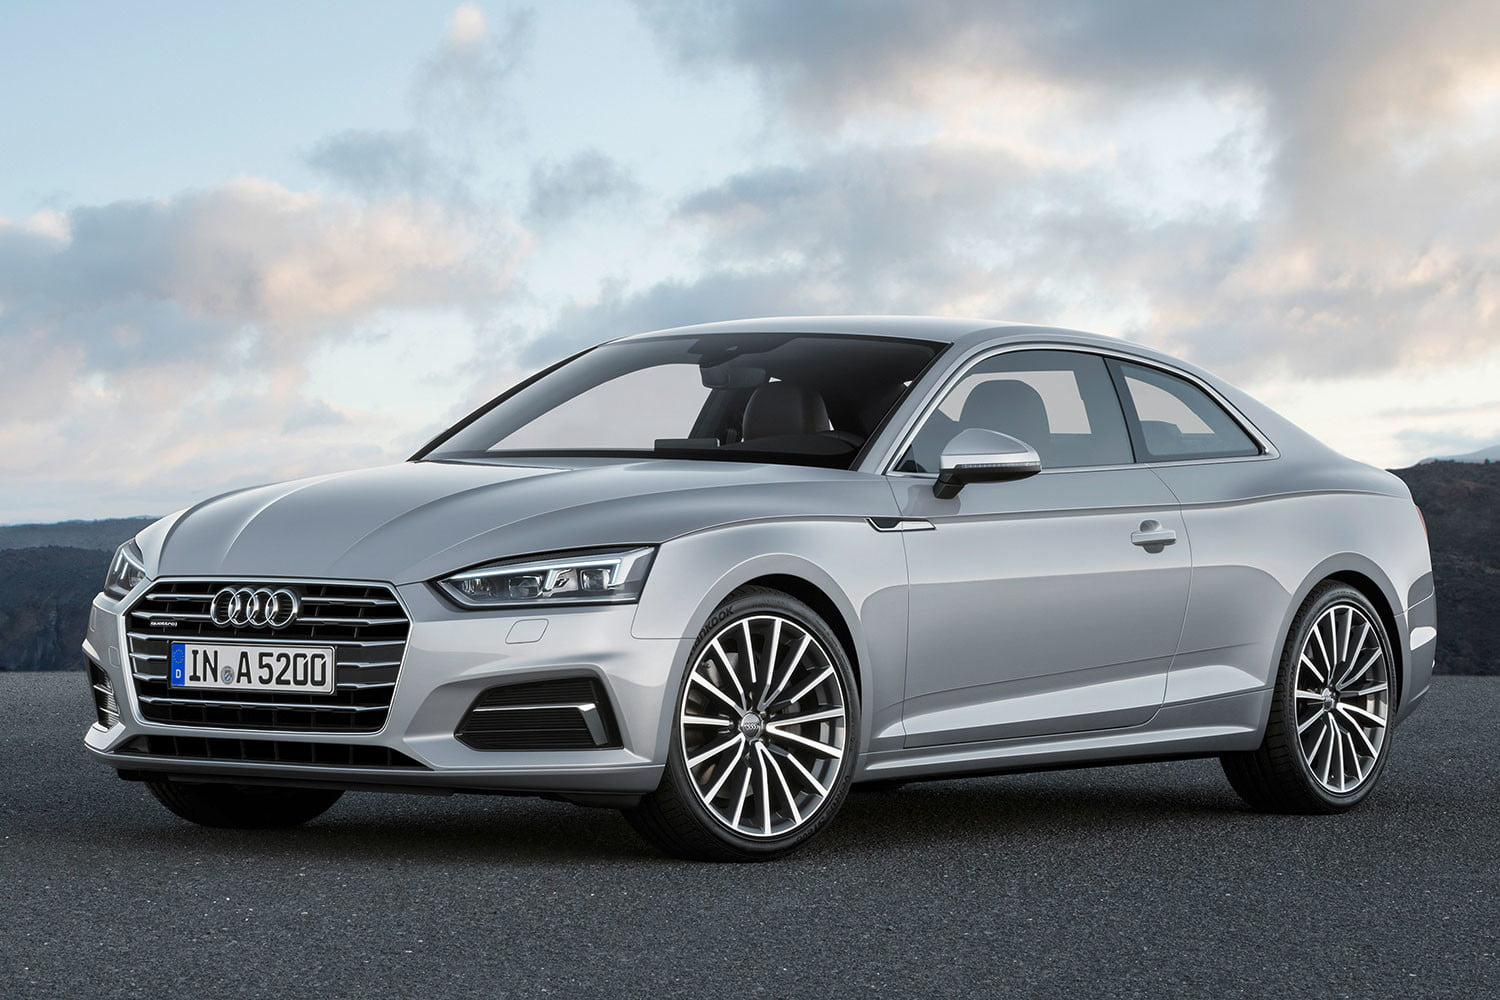 2017 audi a5 news pictures specs performance coupe 001